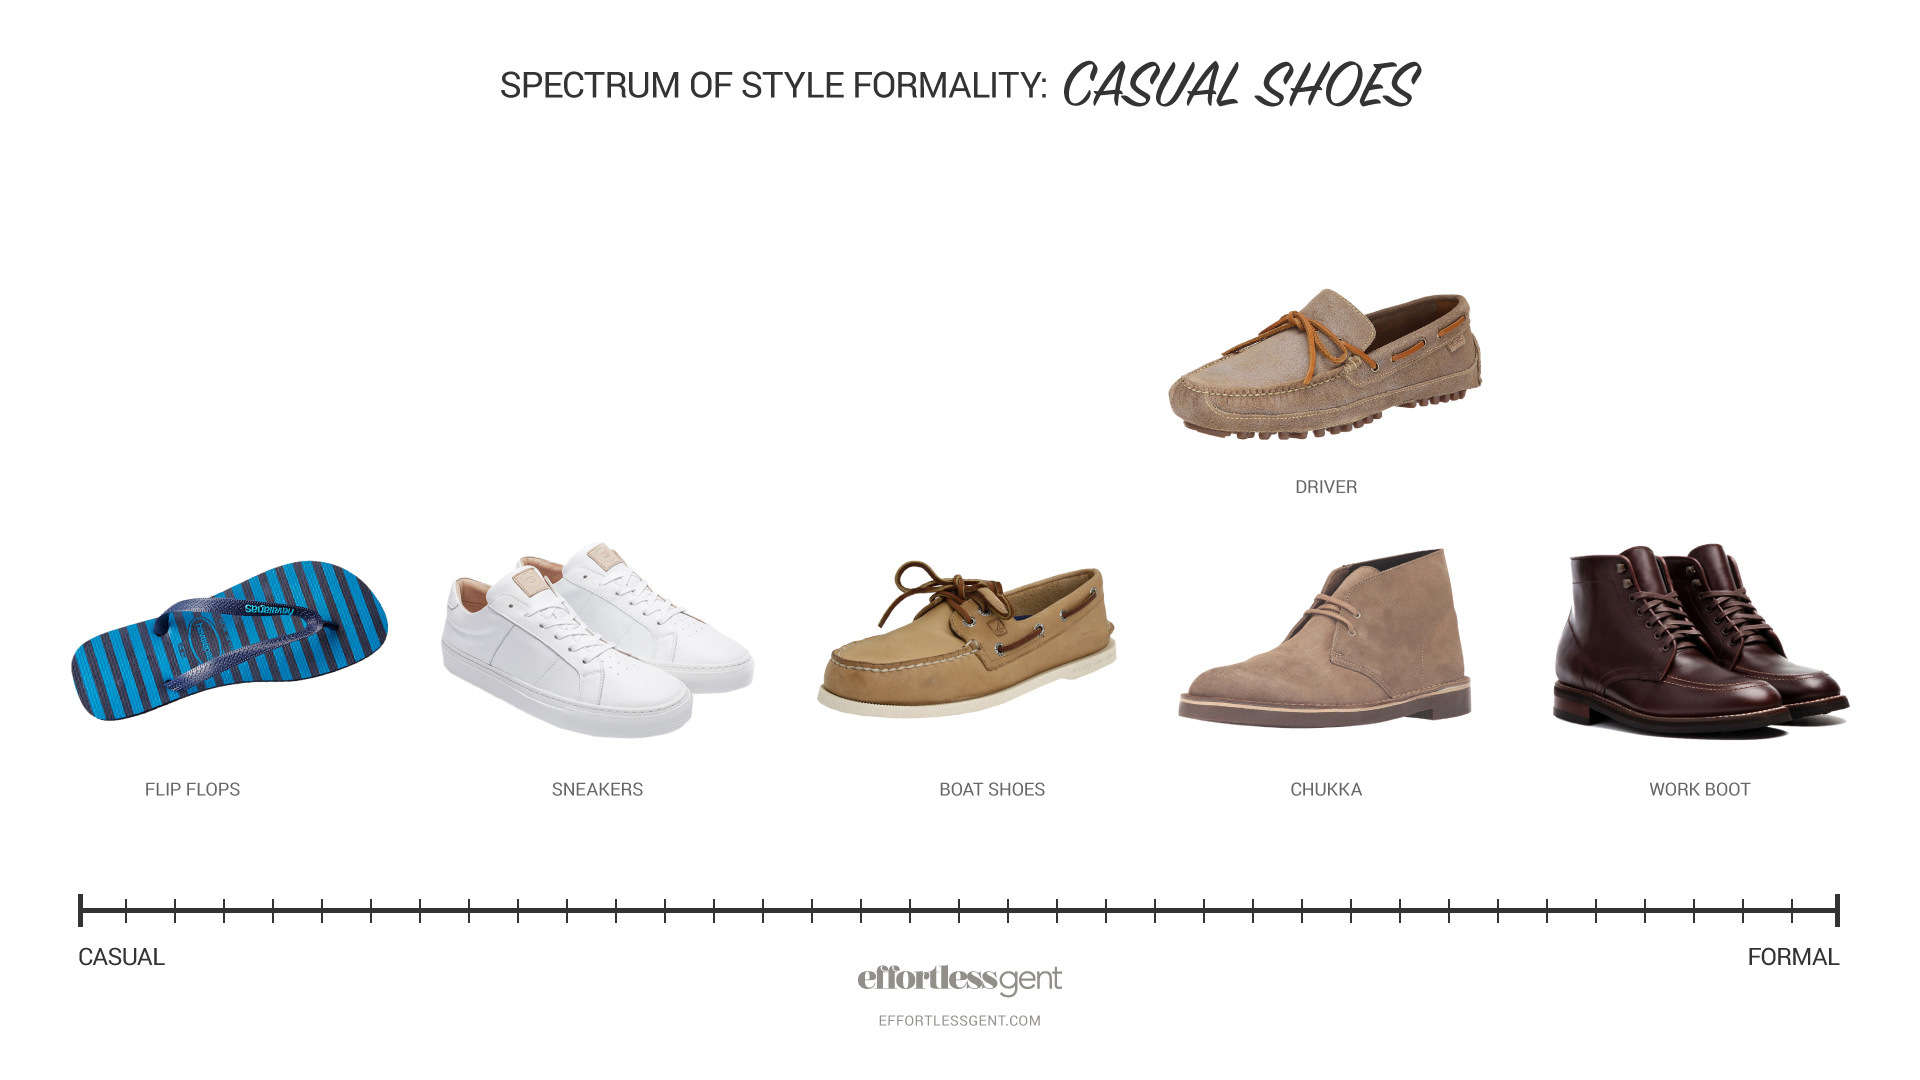 Spectrum of Style Formality: How to mix and match casual and dressy clothes